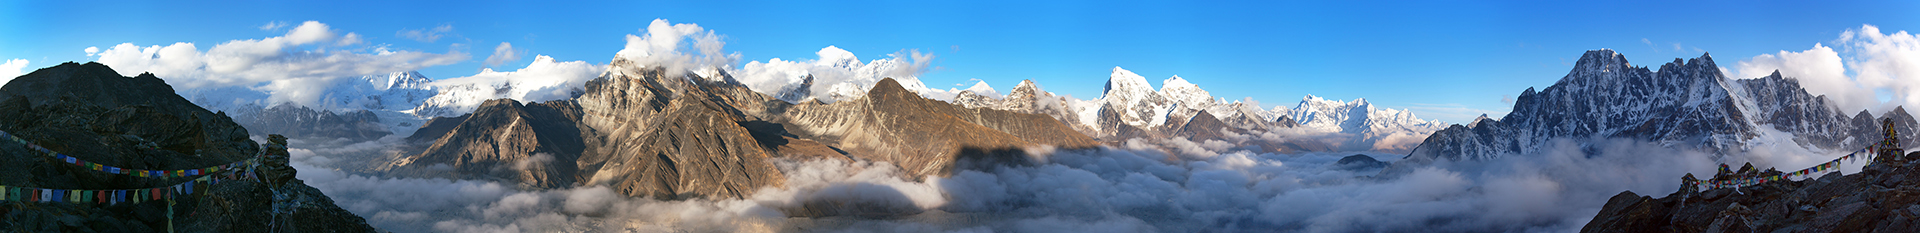 mount everest panorama image